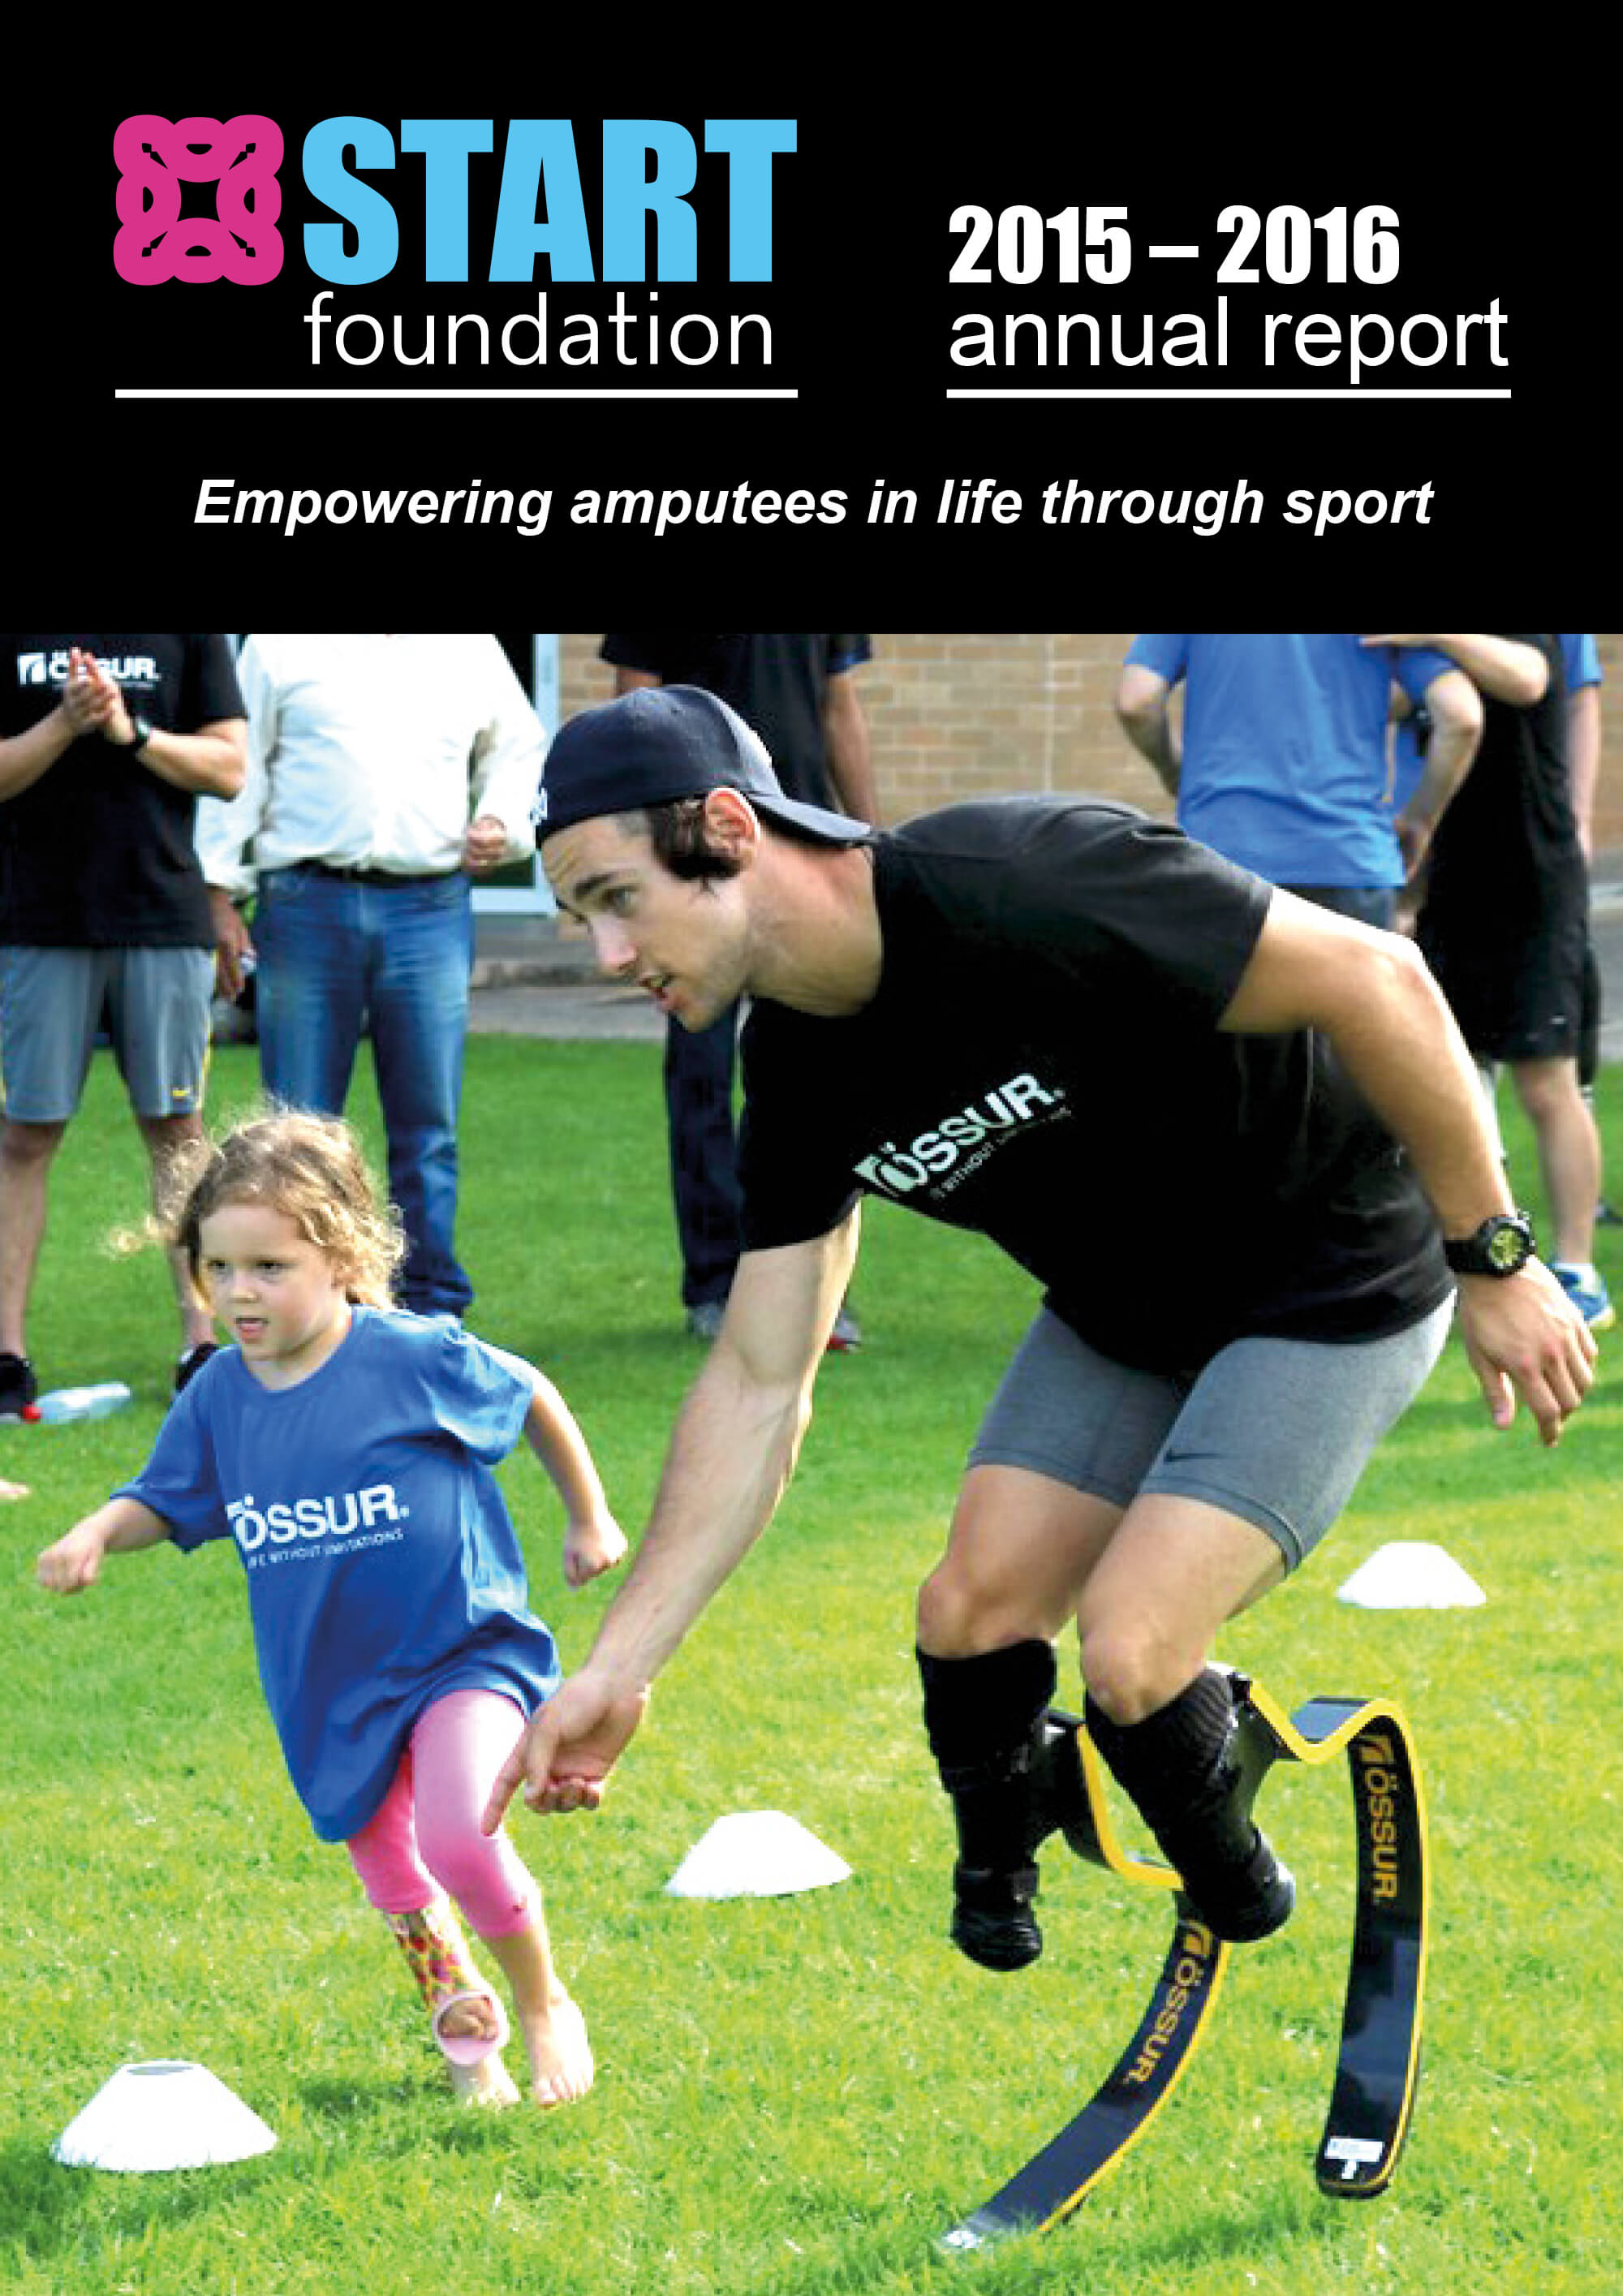 Click to view Annual Report.